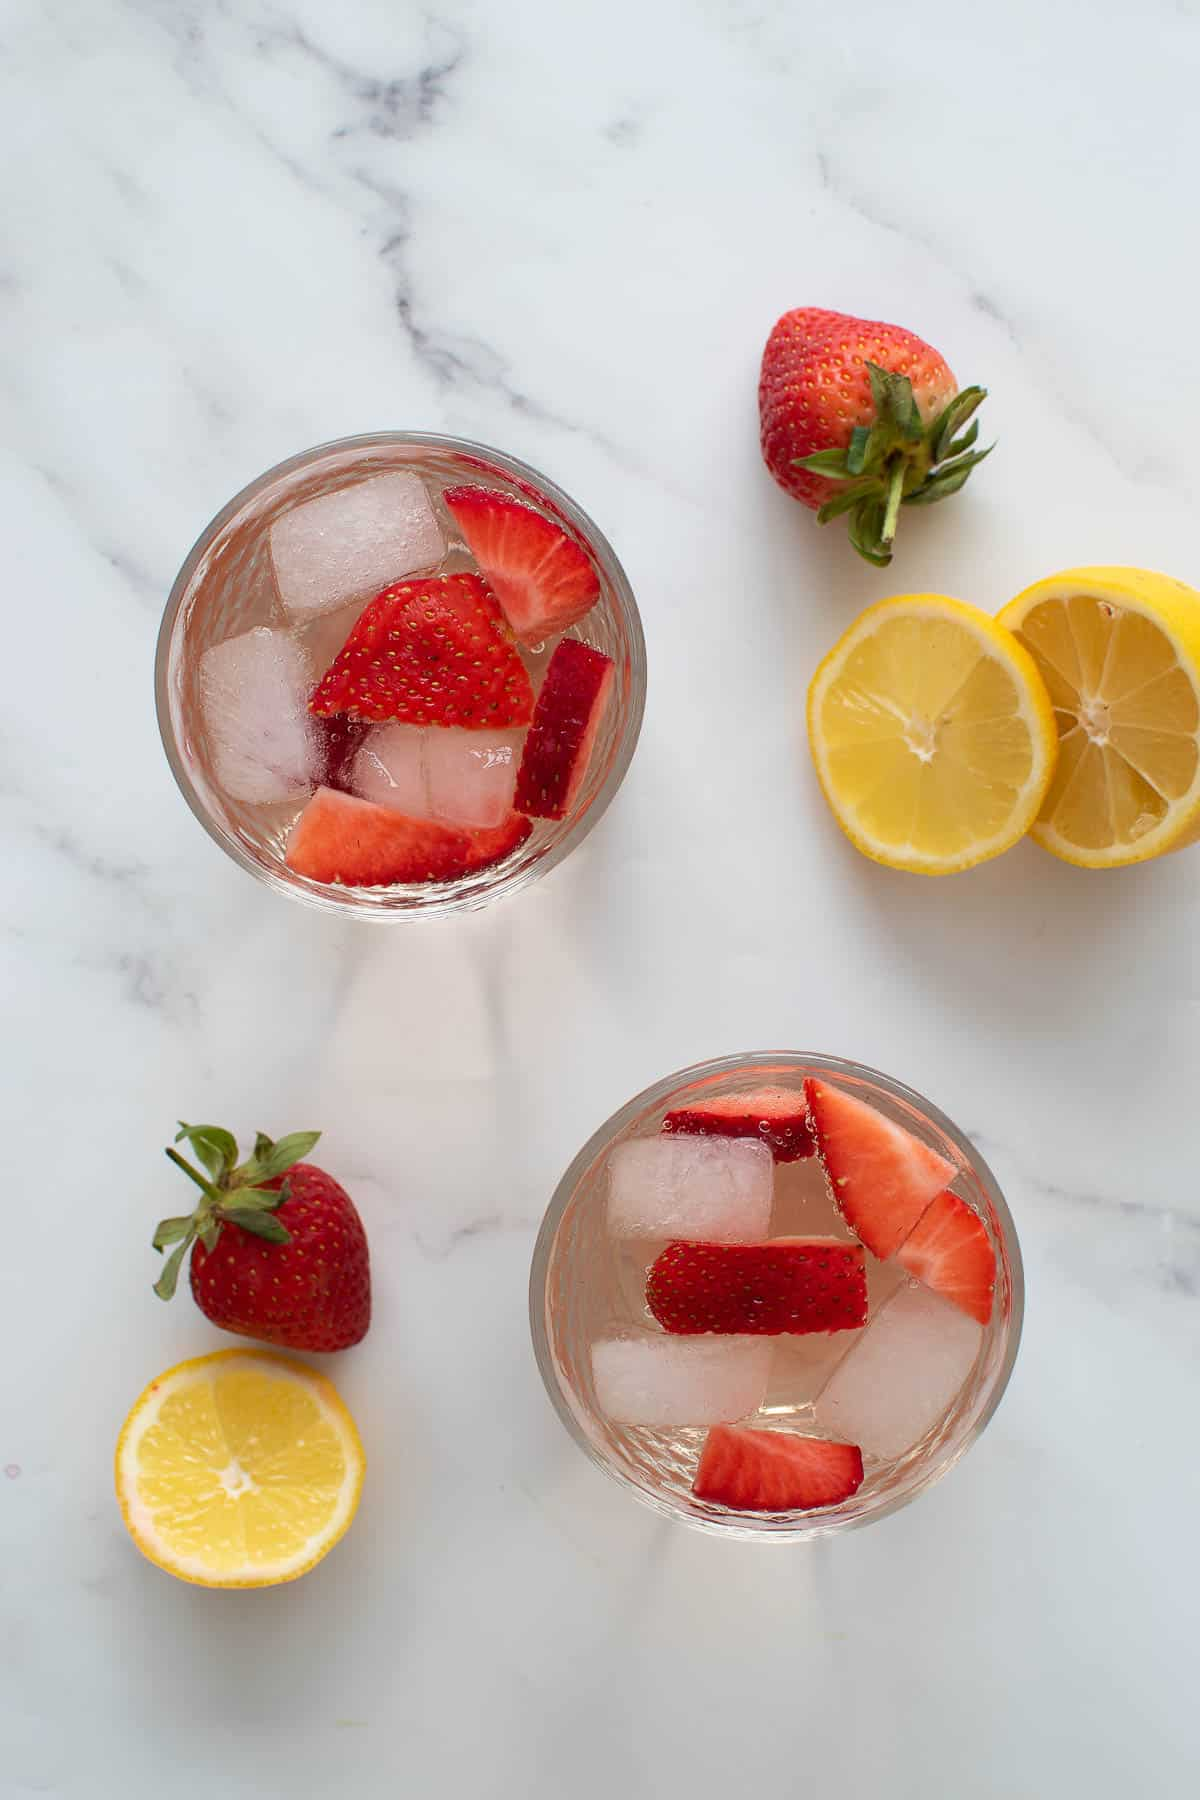 Two glasses of rose wine spritzer with strawberries and lemon.